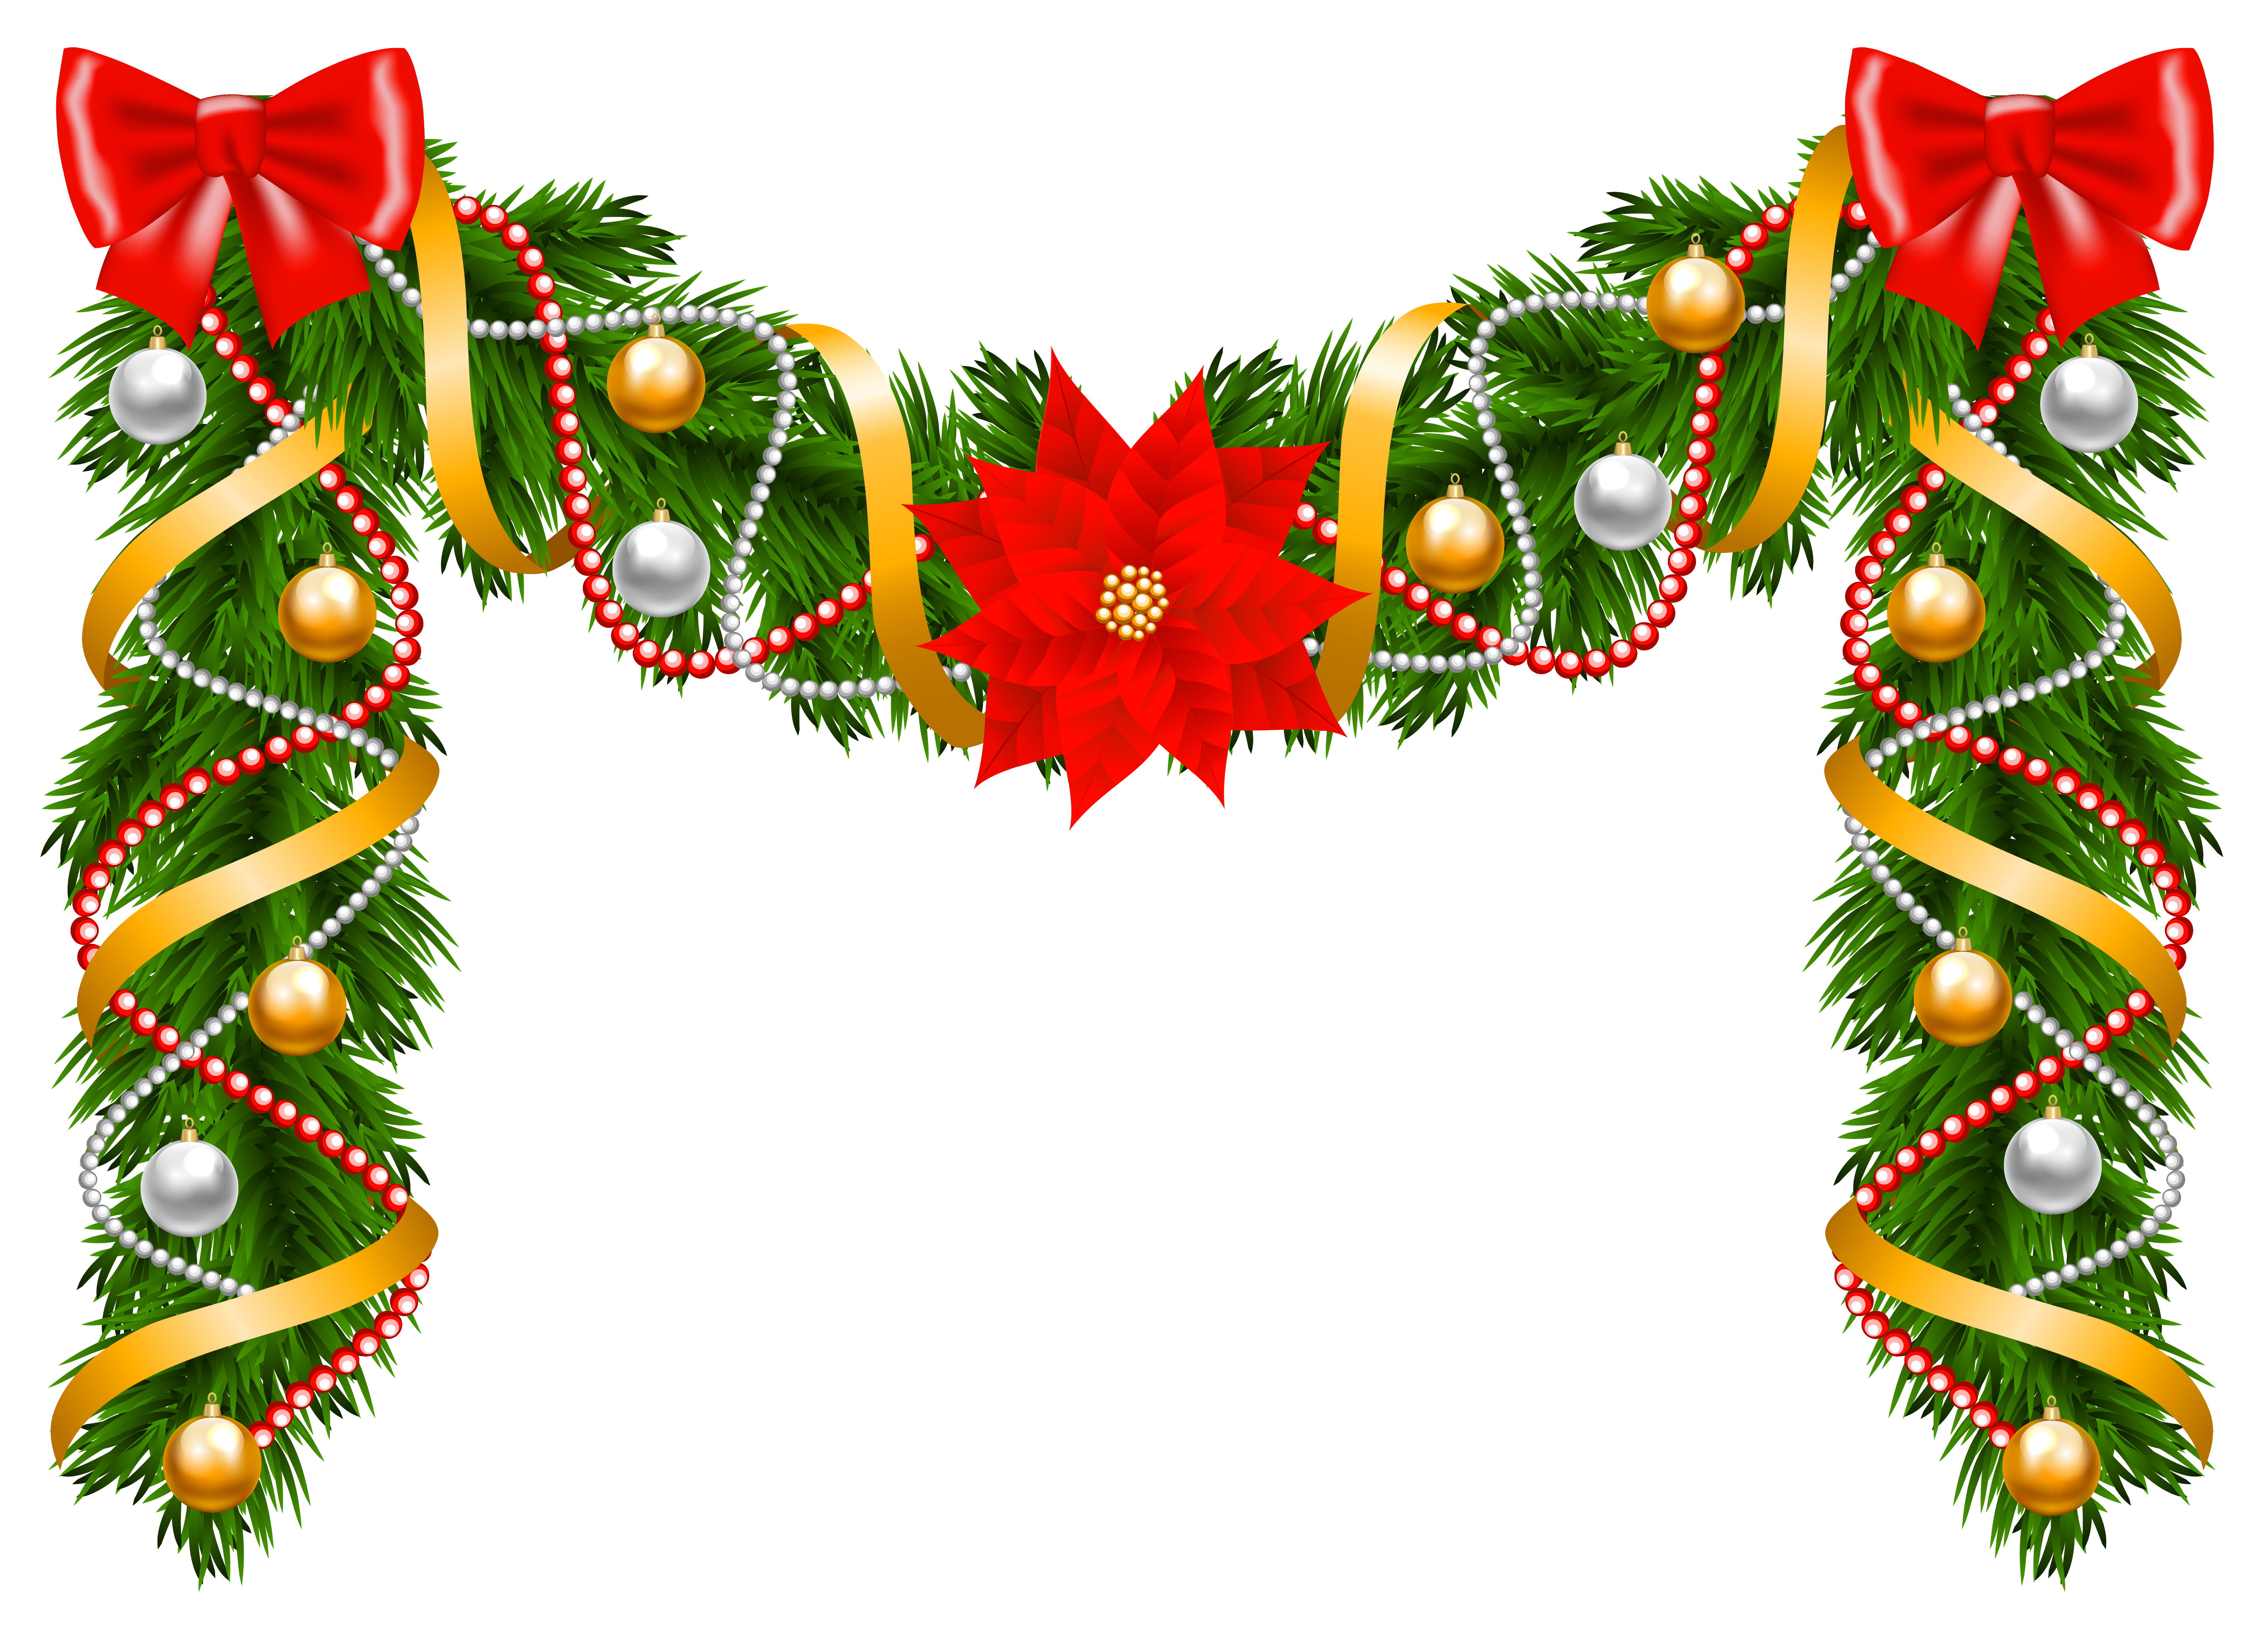 Christmas deco png image. Clipart fruit garland